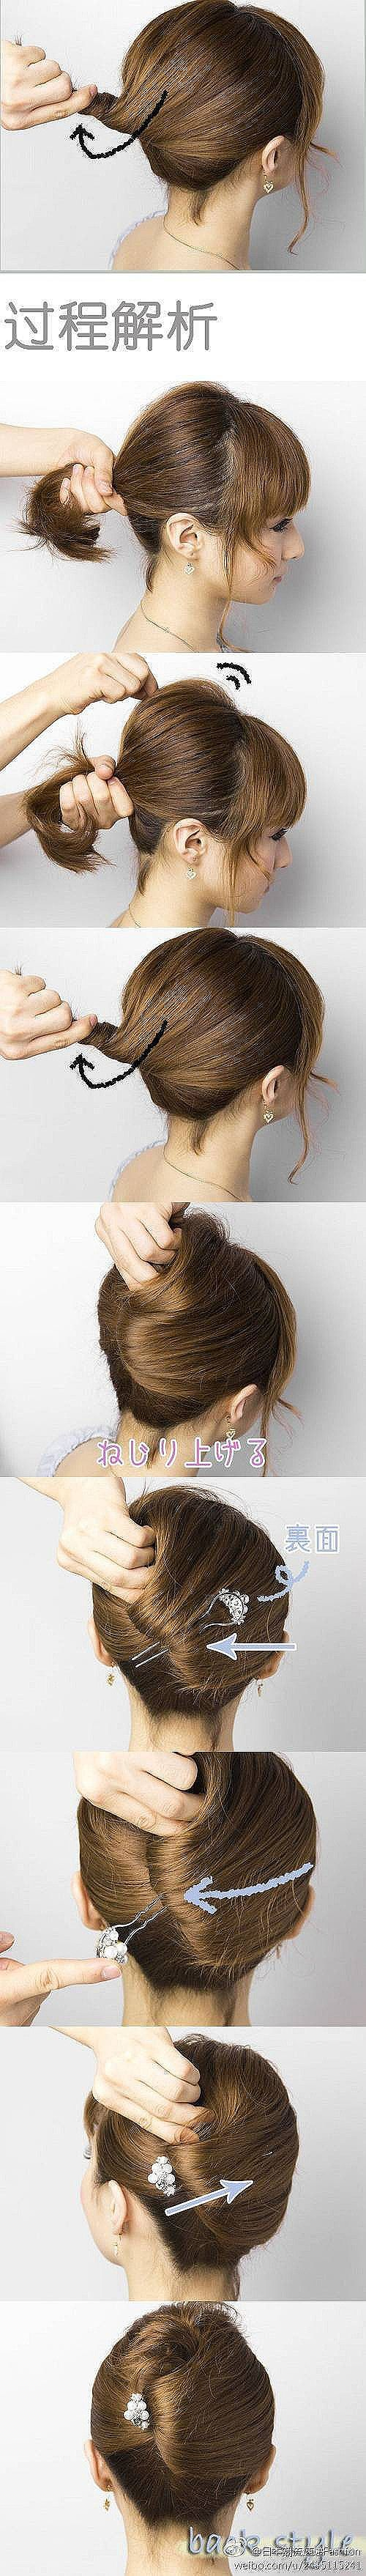 tuto coiffure cheveux court coiffure pinterest coiffures hair and short hair. Black Bedroom Furniture Sets. Home Design Ideas